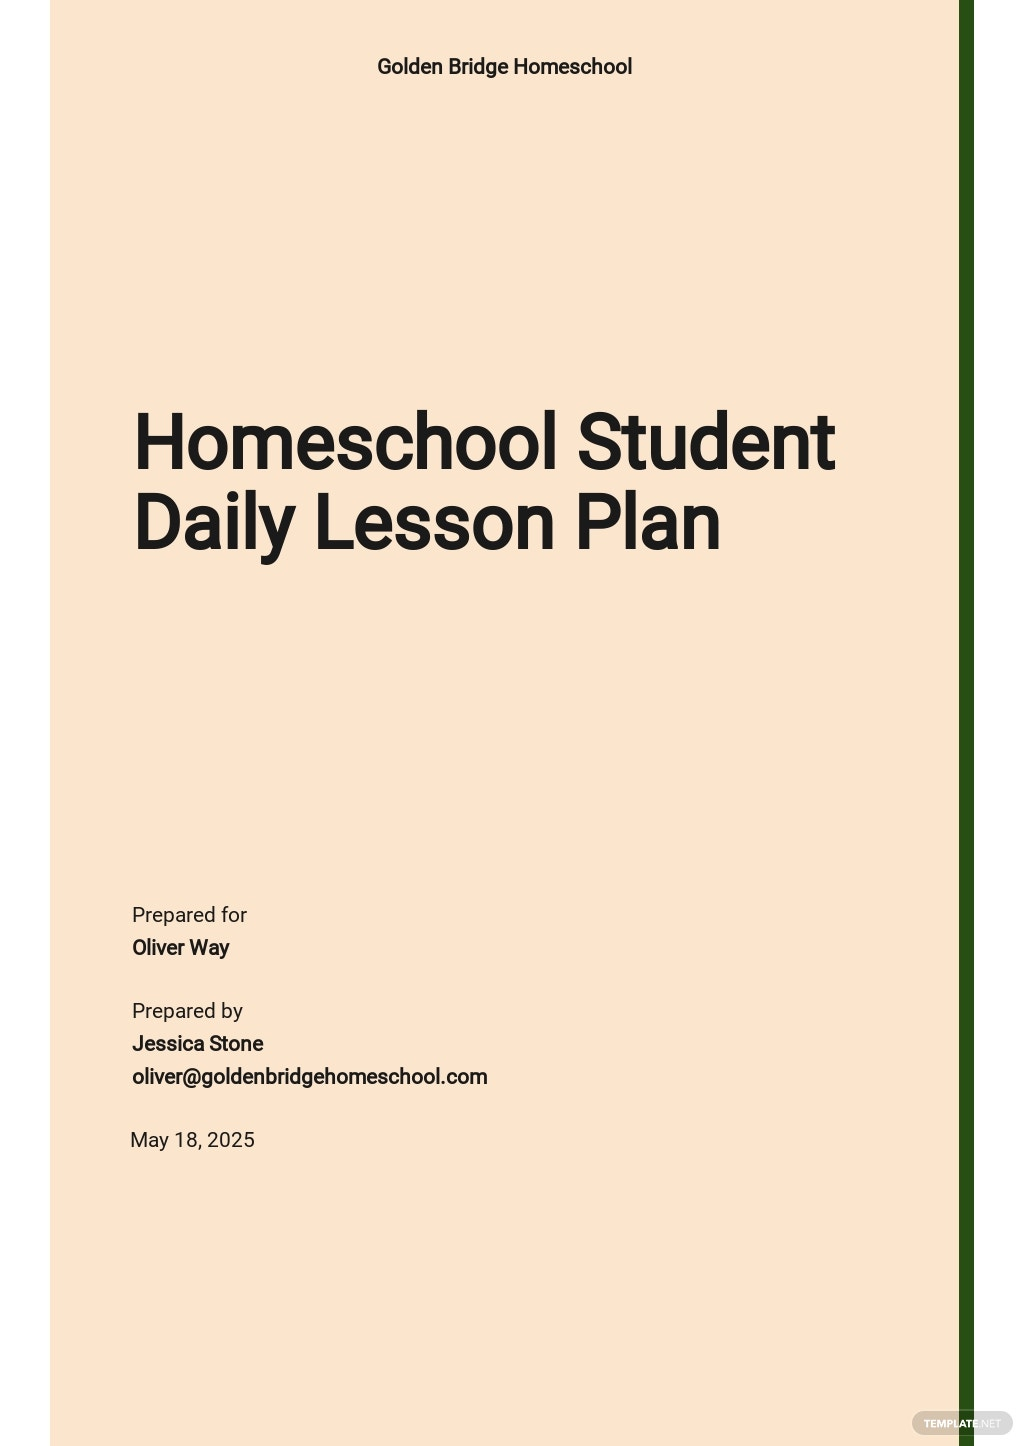 Homeschool Daily Student Lesson Plan Template.jpe